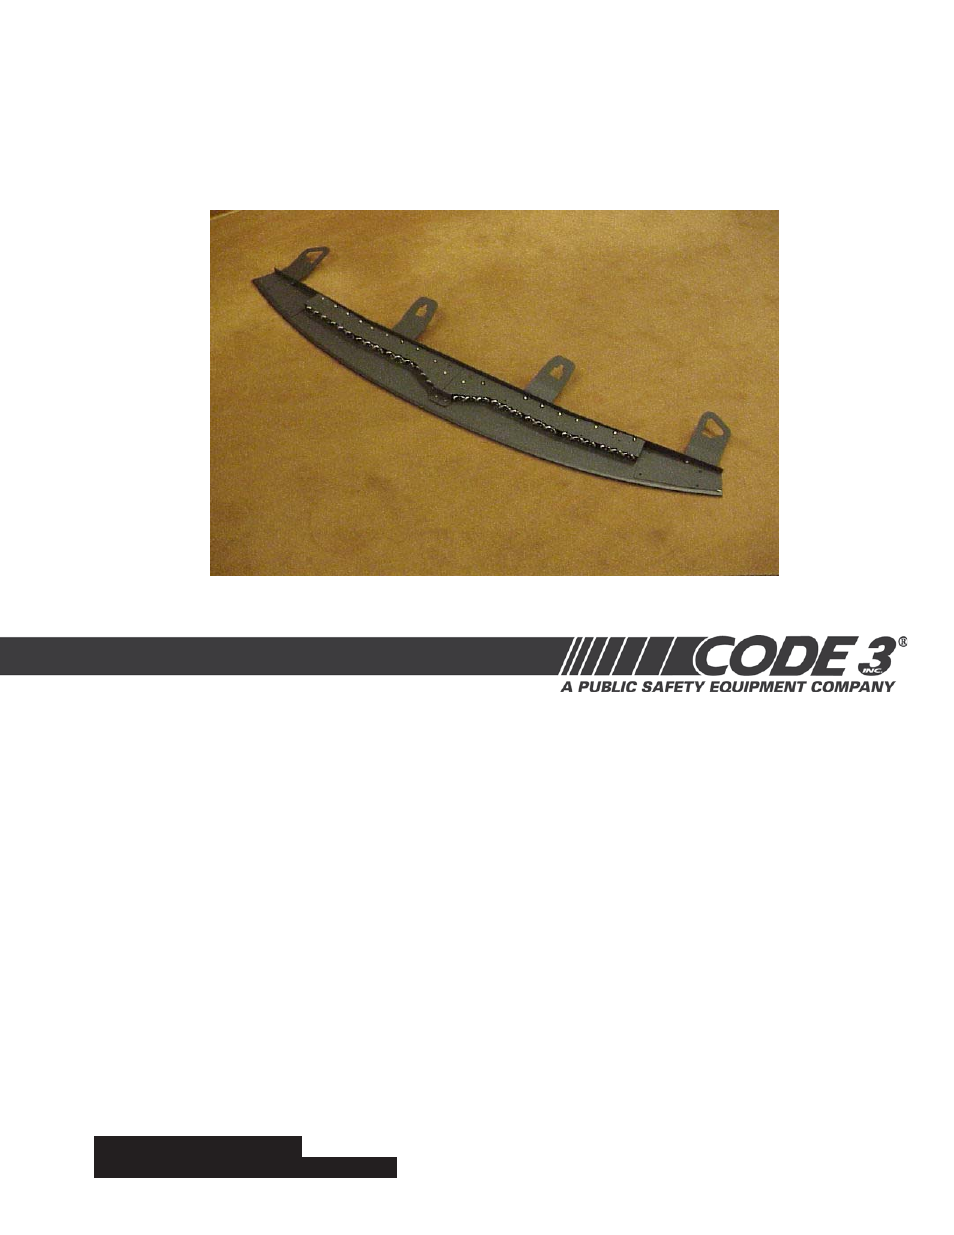 Code 3 Supervisor For 2006 Ford Crown Victoria User Manual